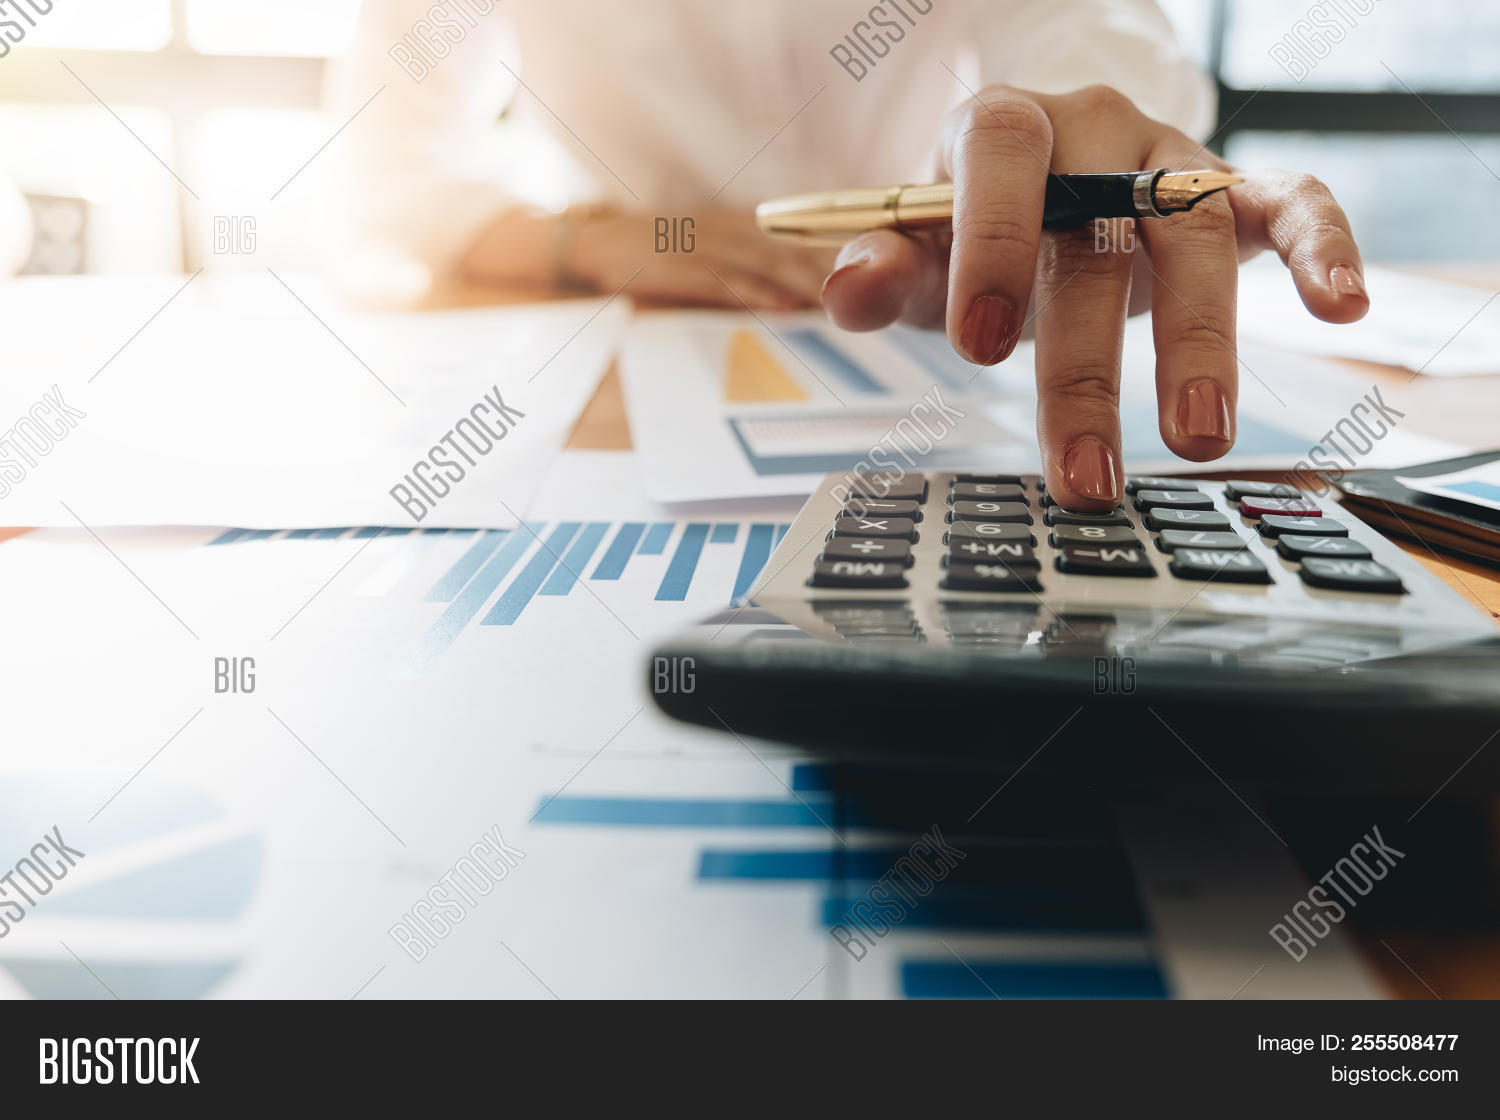 account,accountant,accounting,admin,administrator,analysis,analytics,background,bank,bookkeeper,budget,business,businessman,calculate,calculator,chart,computer,concept,corporate,data,desk,document,doing,economy,expenses,finance,financial,graph,hand,income,investment,laptop,man,manager,math,office,paper,paperwork,payment,people,person,personal,plan,professional,project,report,research,tax,woman,working